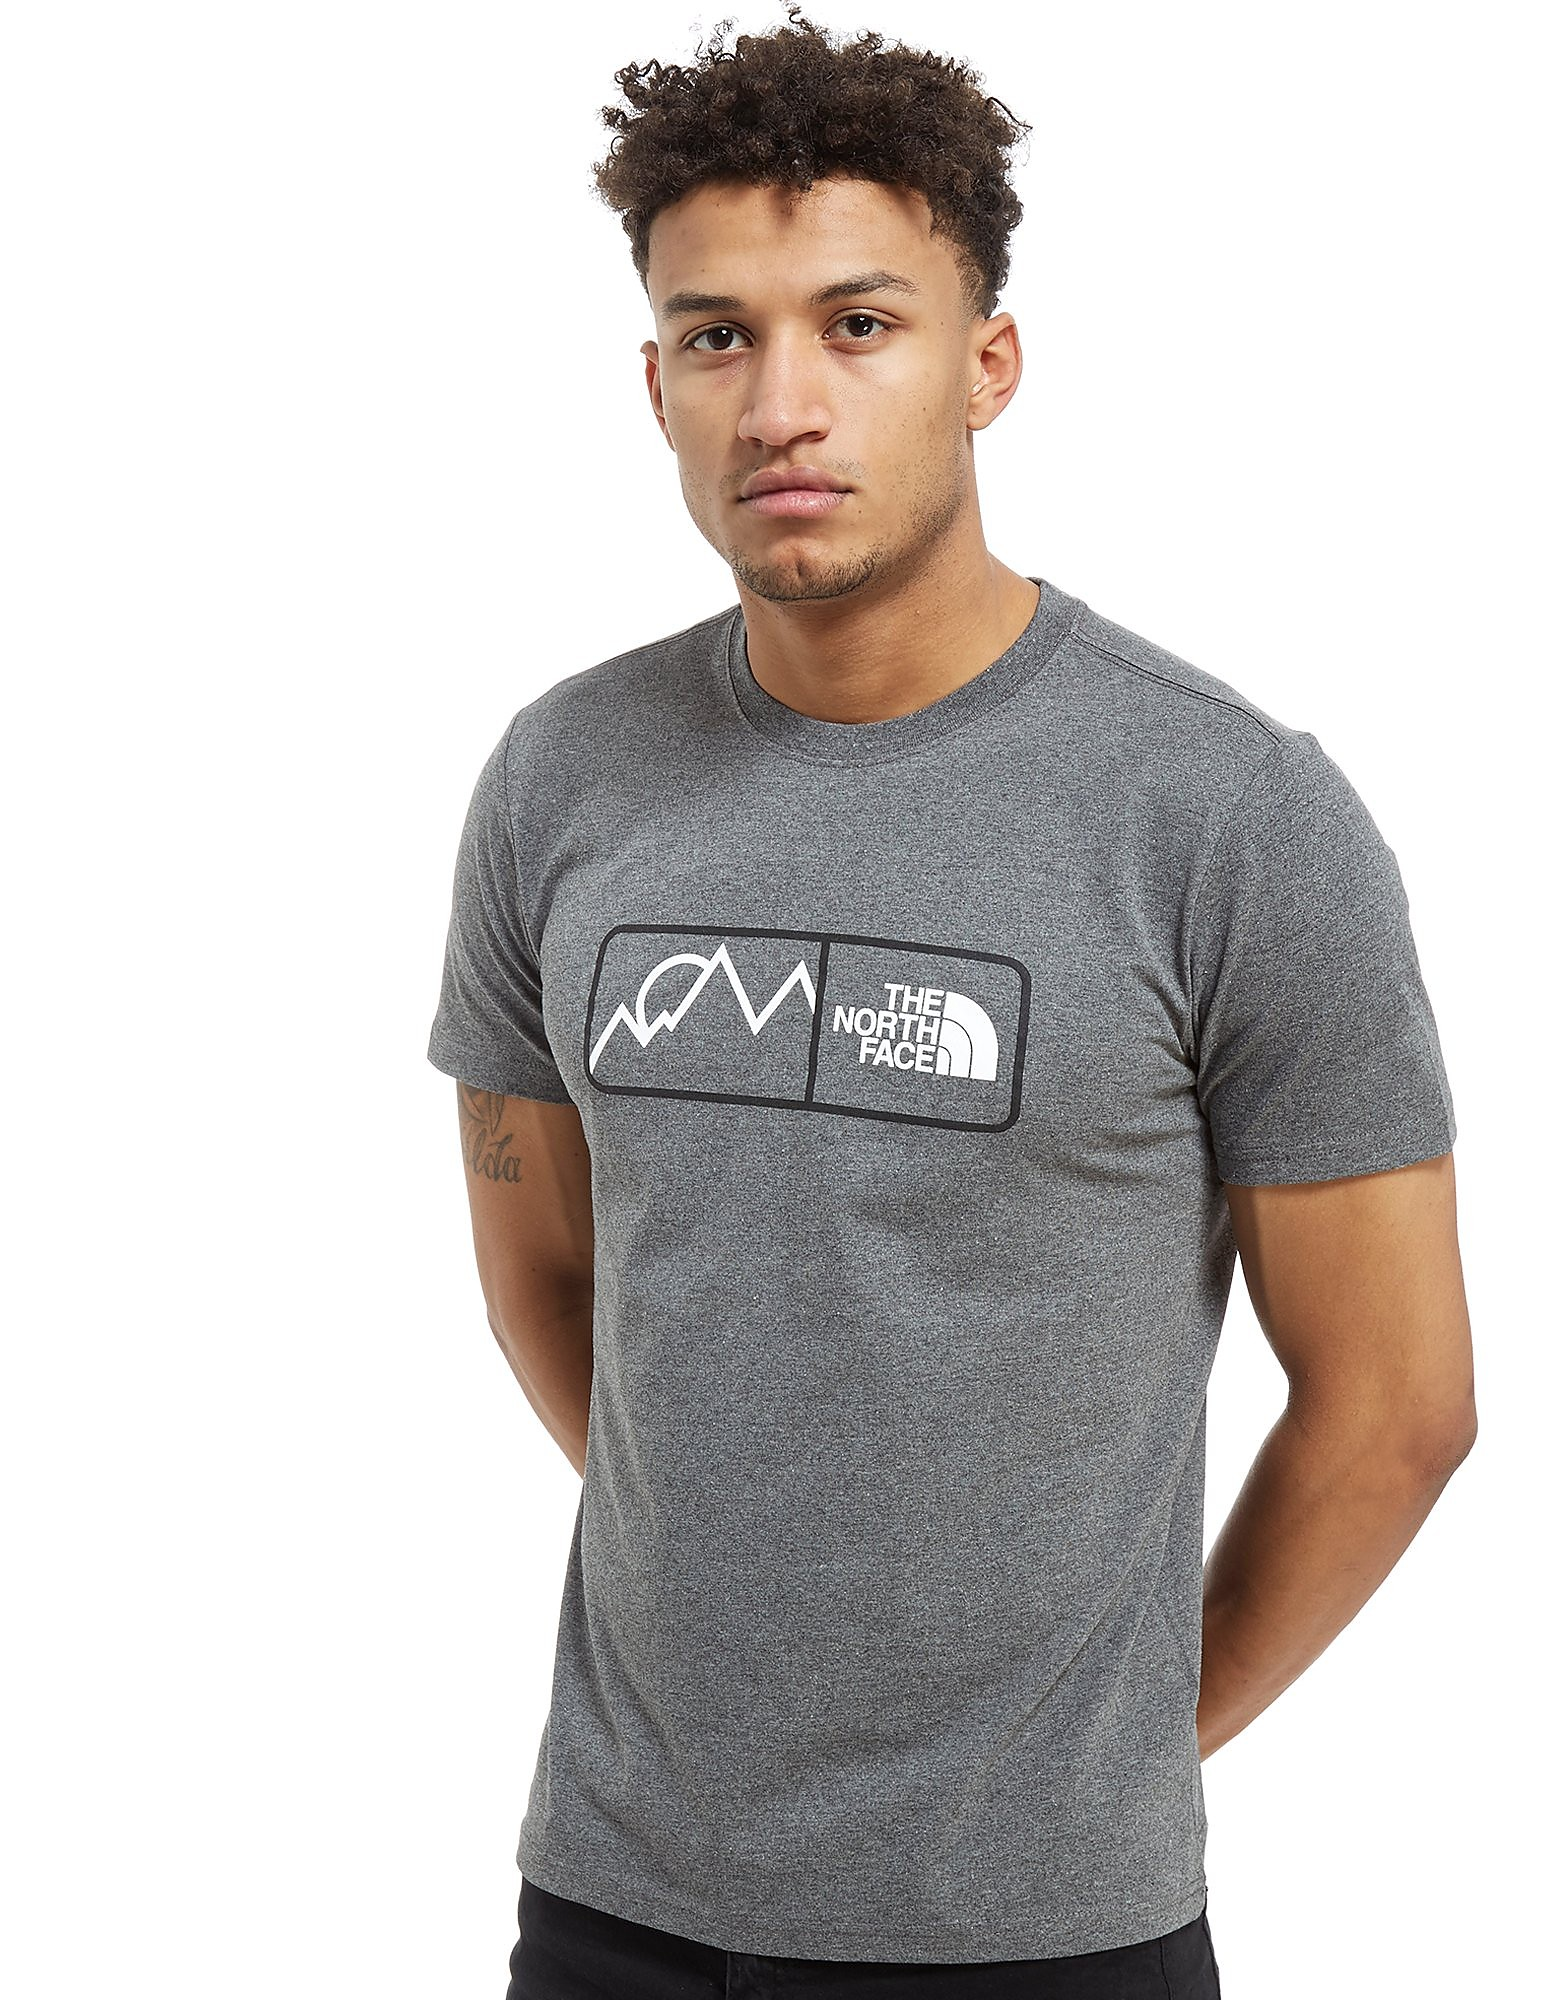 The North Face Mountain Ridge T-Shirt